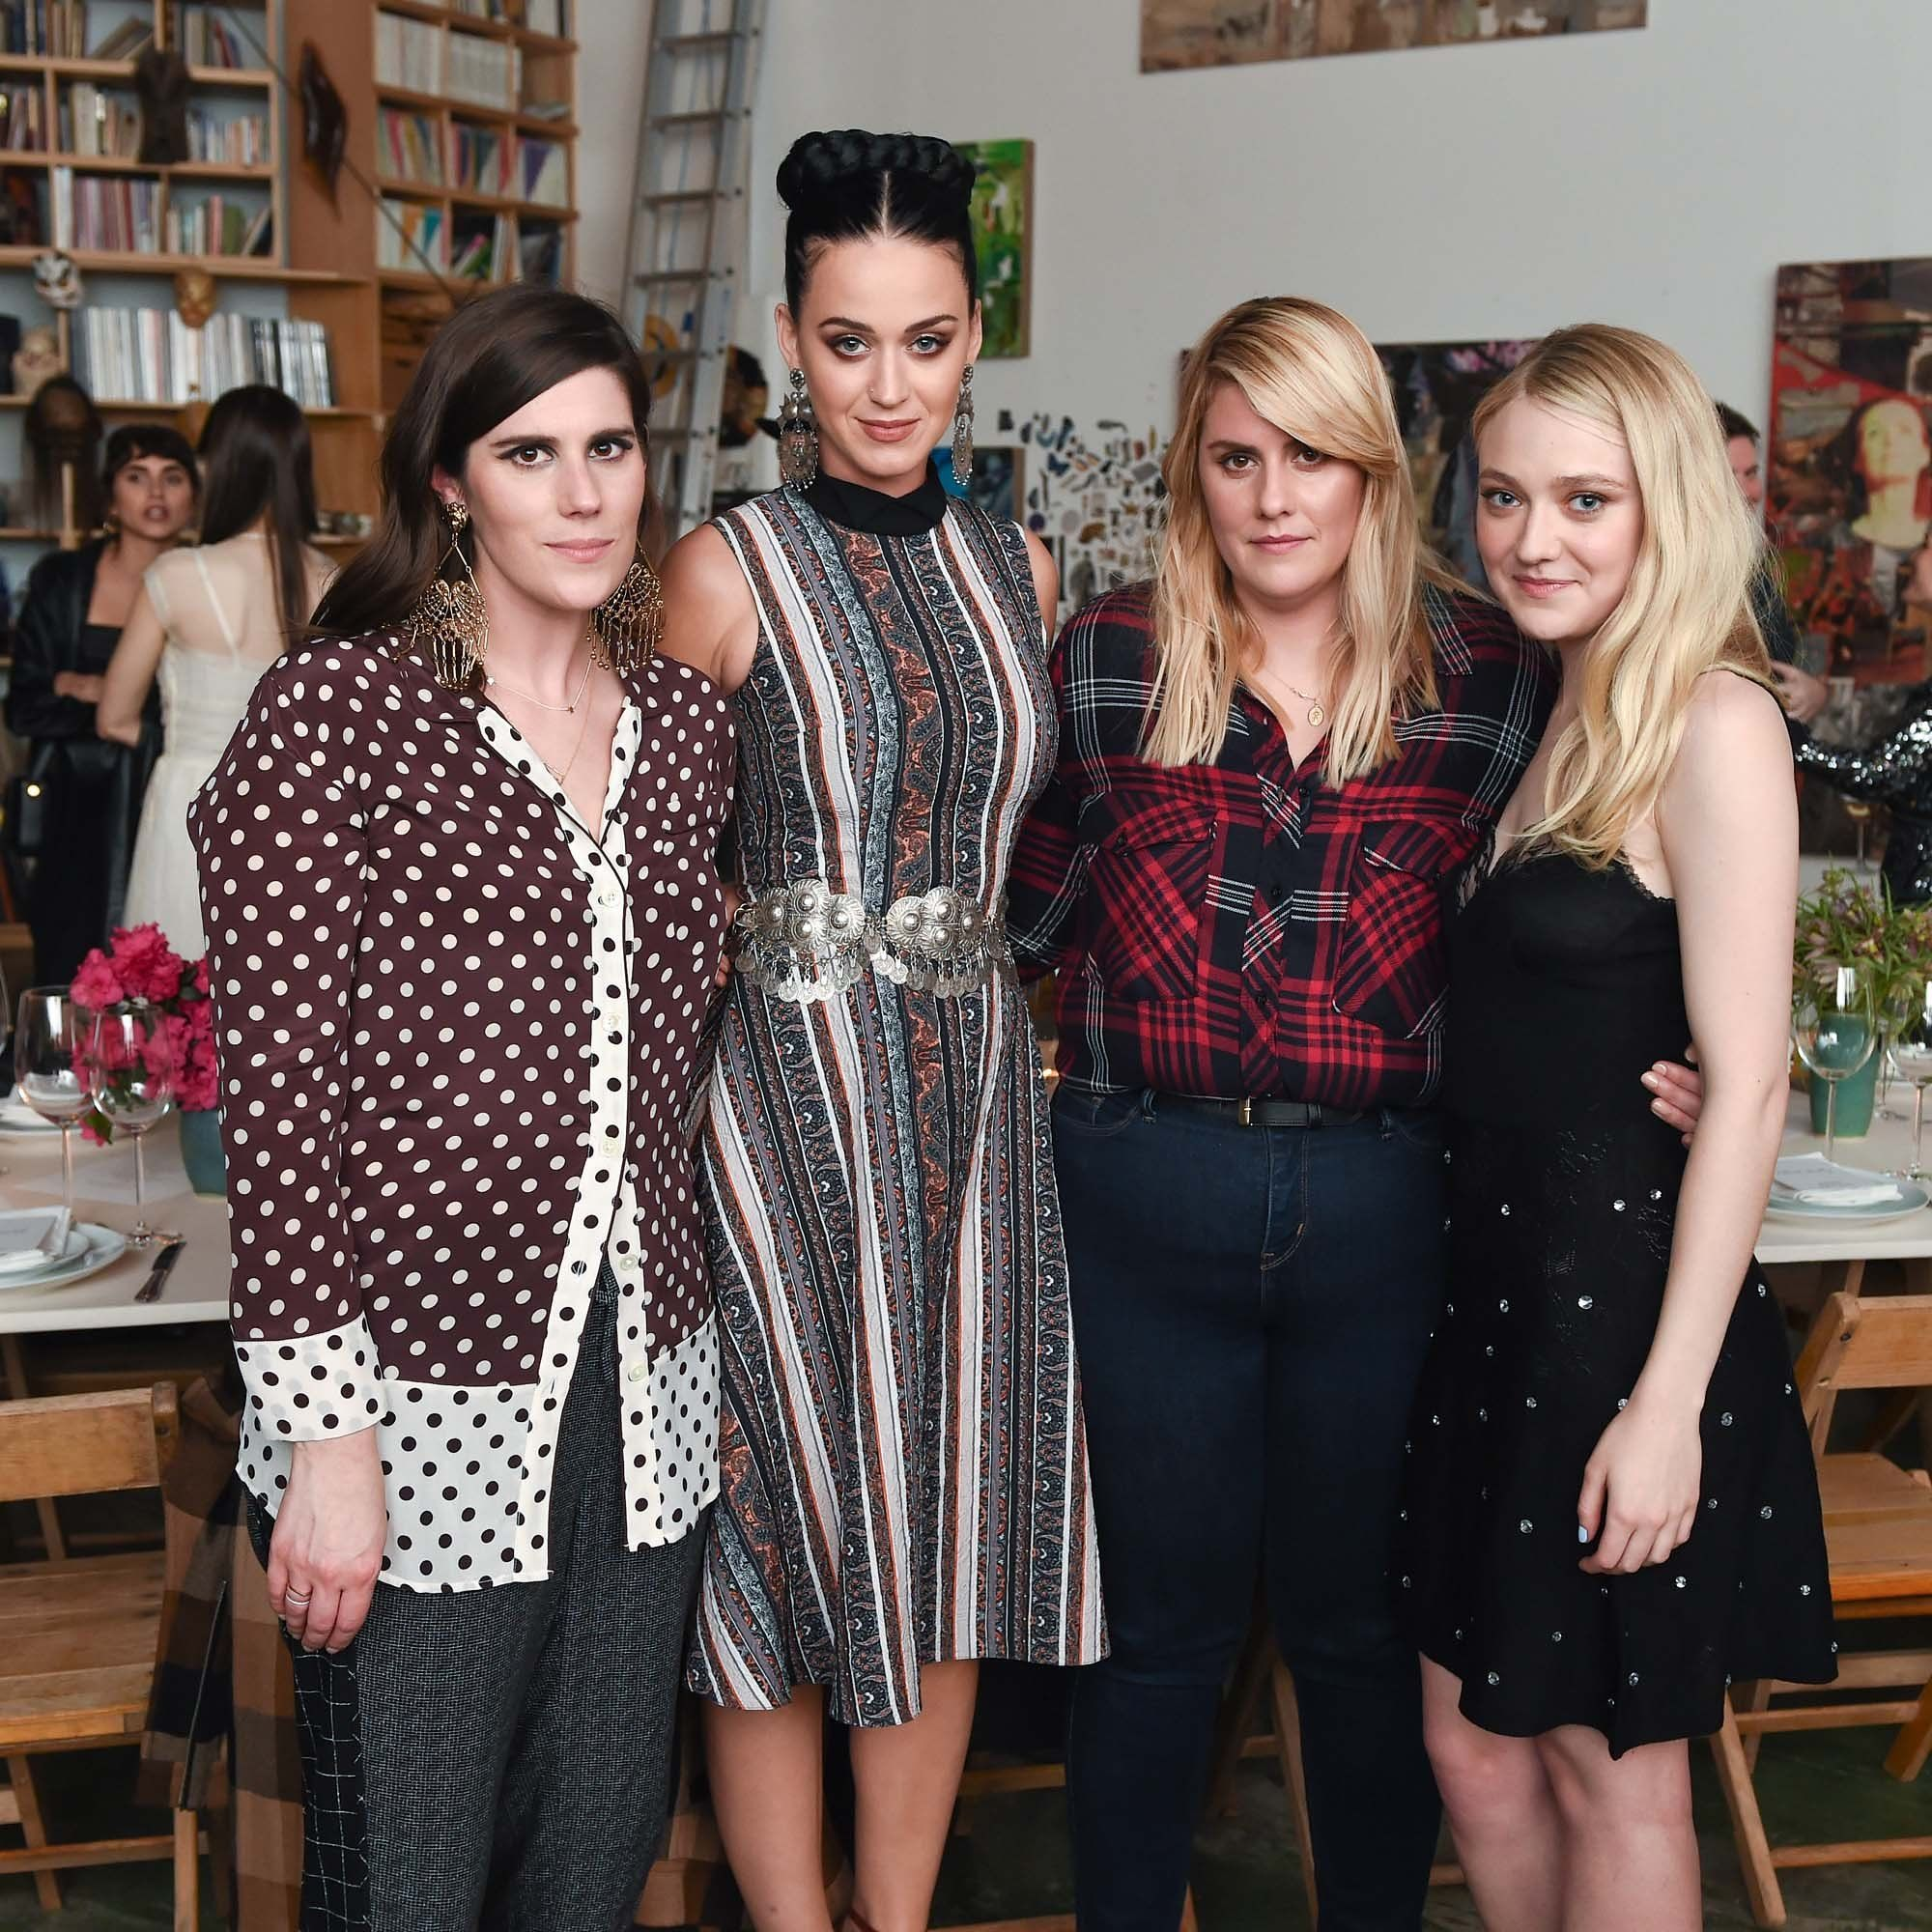 NEWS 17.3.2016....Laura Mulleavy, Katy Perry, Kate Mulleavy, and Dakota Fanning